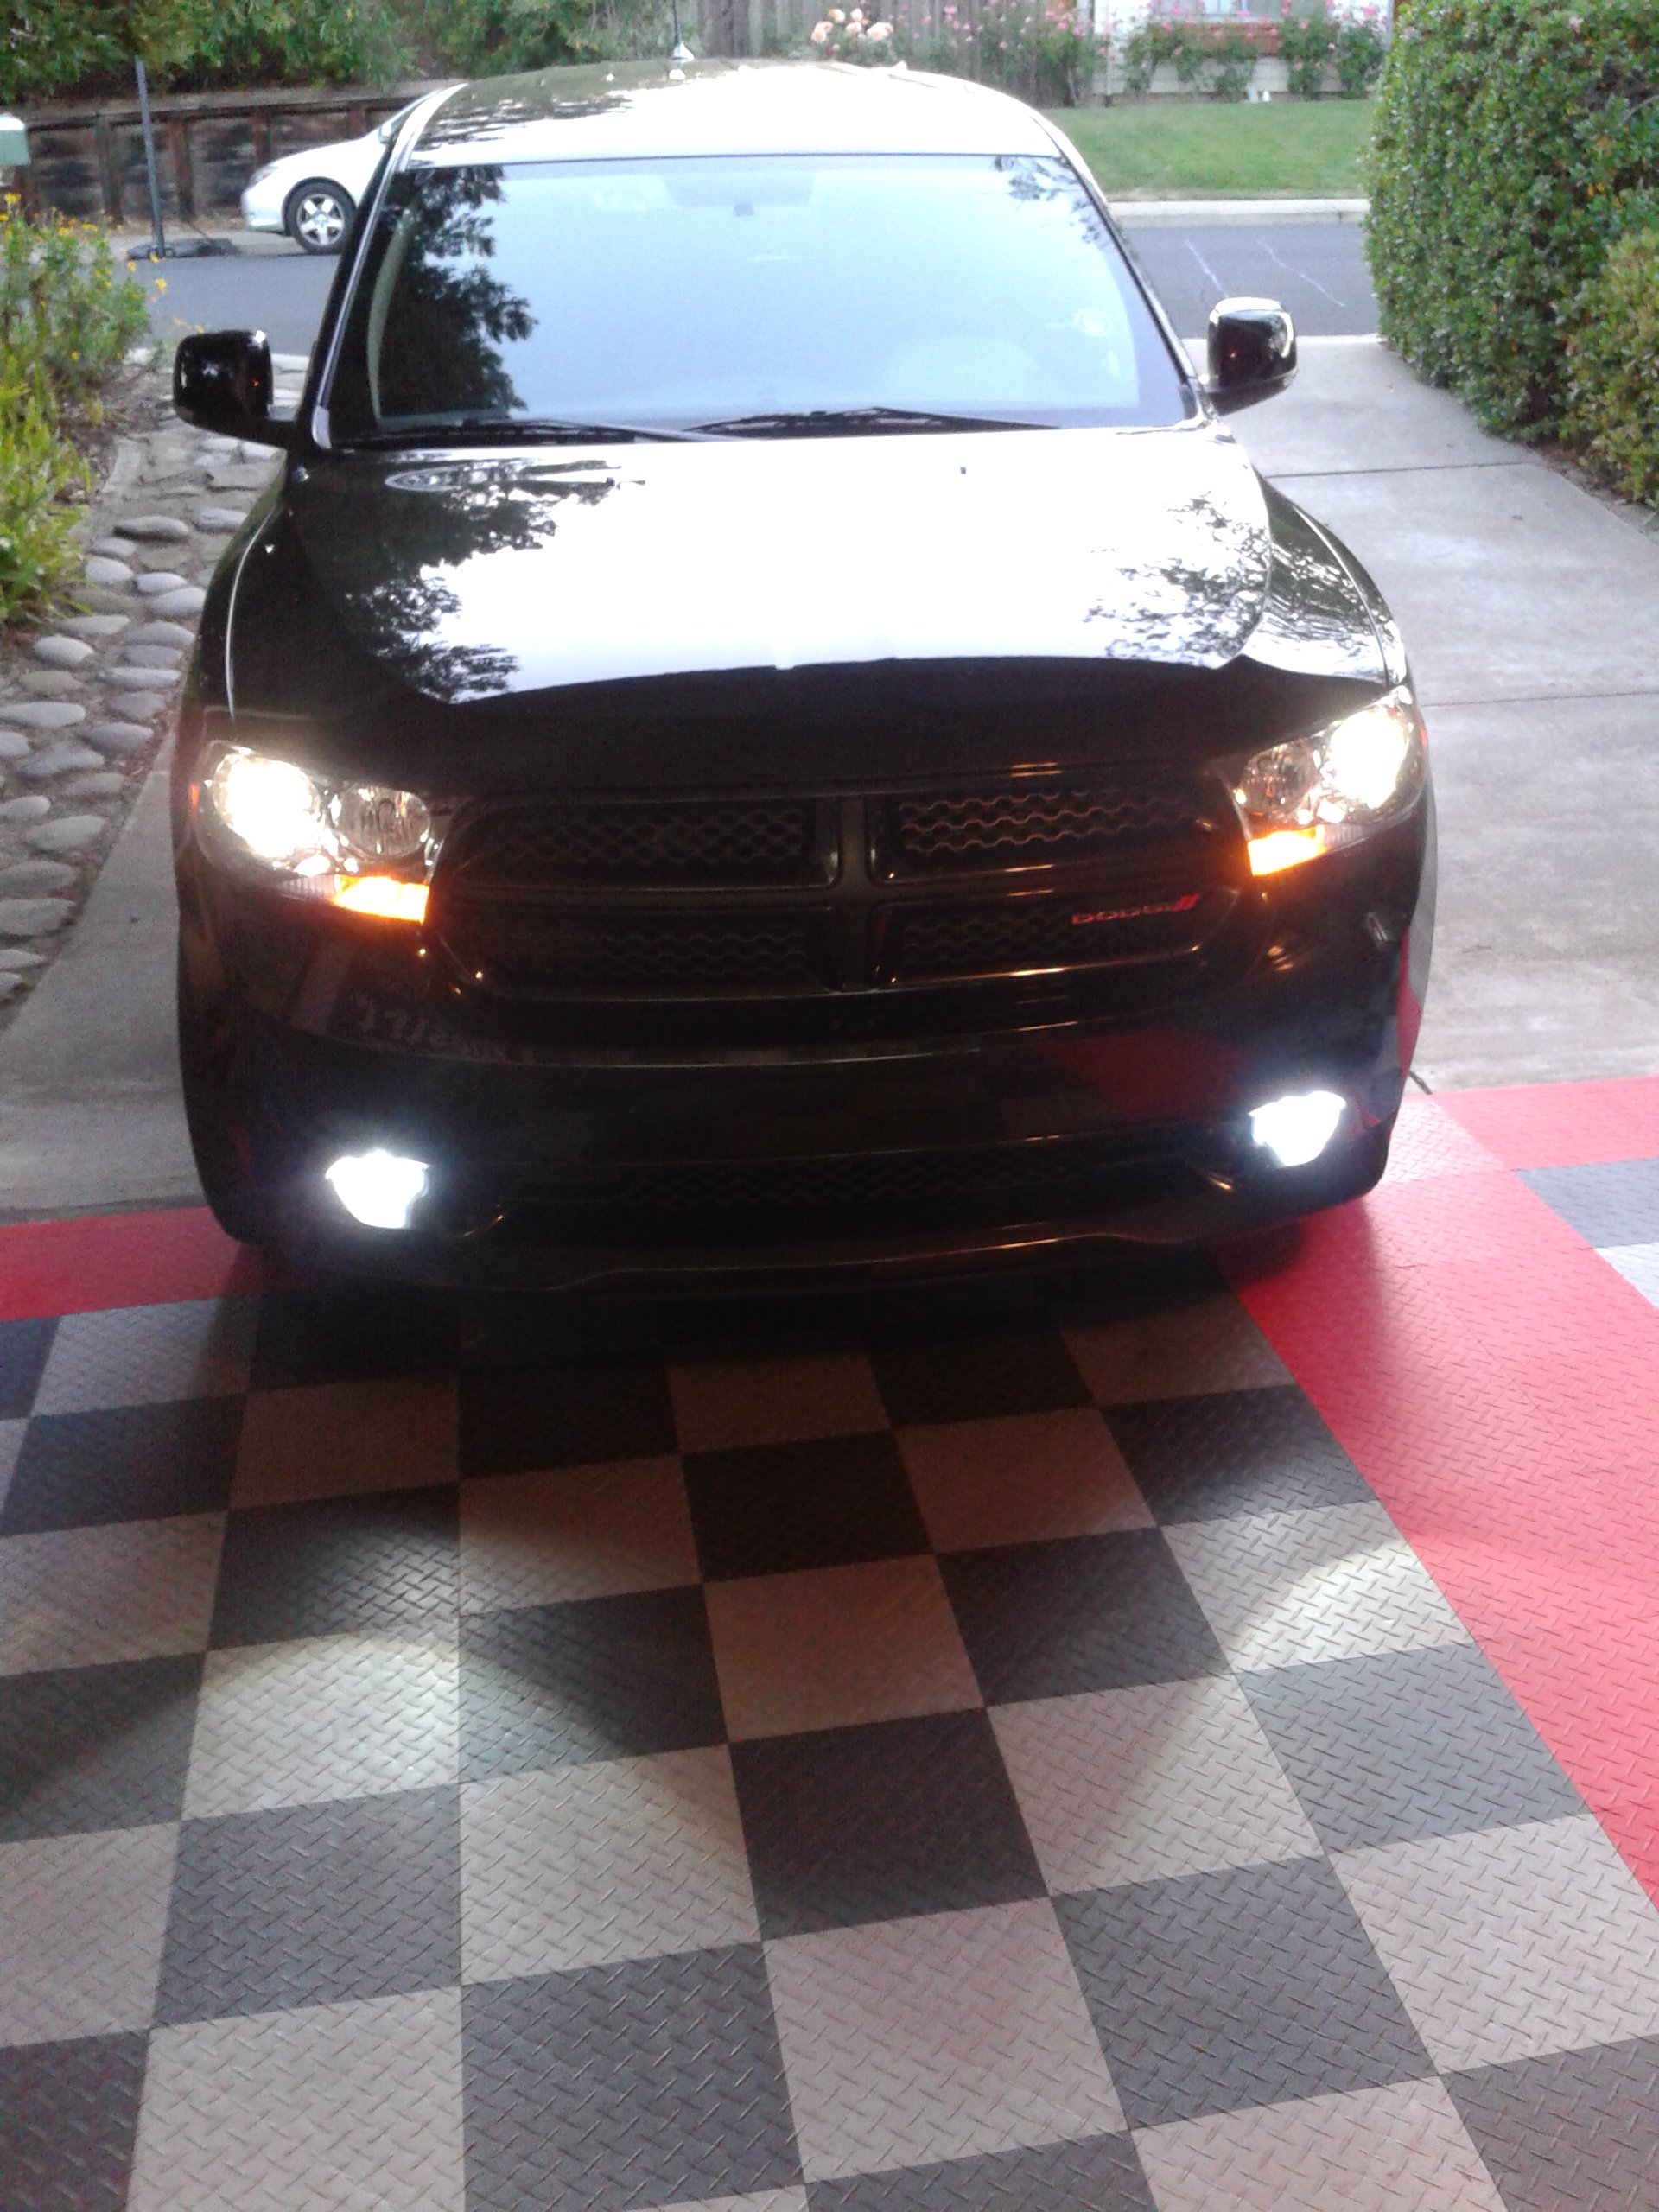 Brilliant Black 2012 Dodge Durango R/T